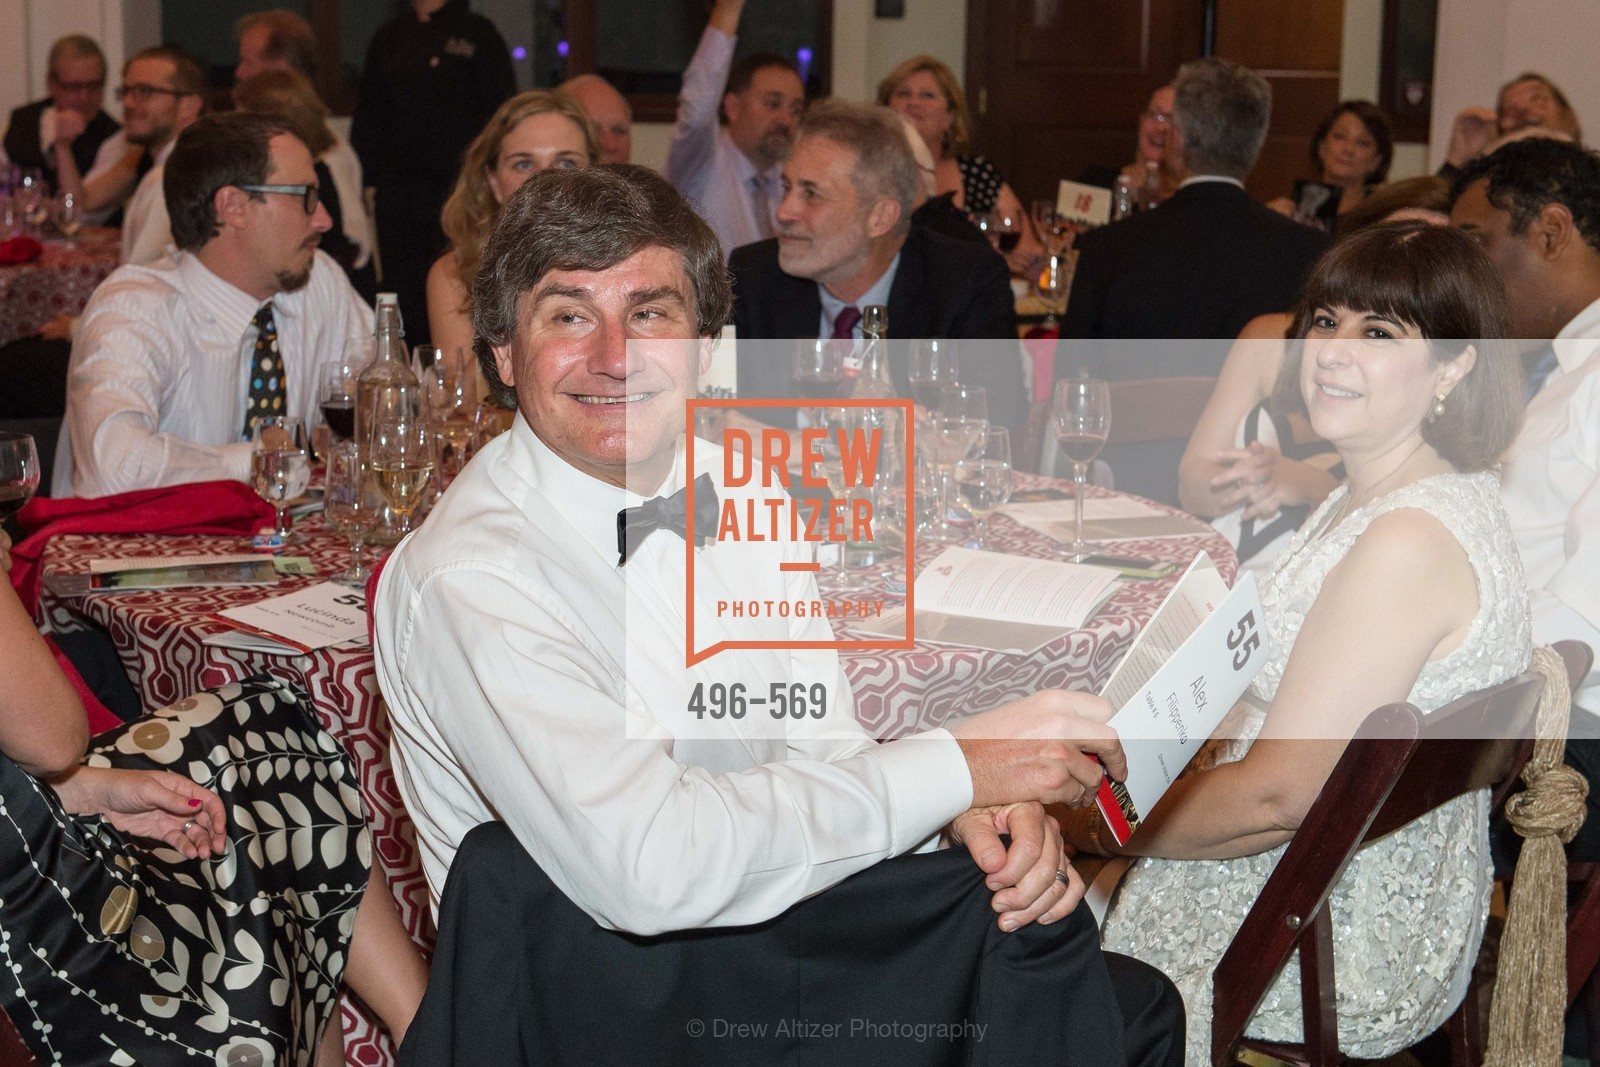 Alex Filippenko, CHABOT Science Center STARLIGHT GALA, US, September 20th, 2014,Drew Altizer, Drew Altizer Photography, full-service agency, private events, San Francisco photographer, photographer california